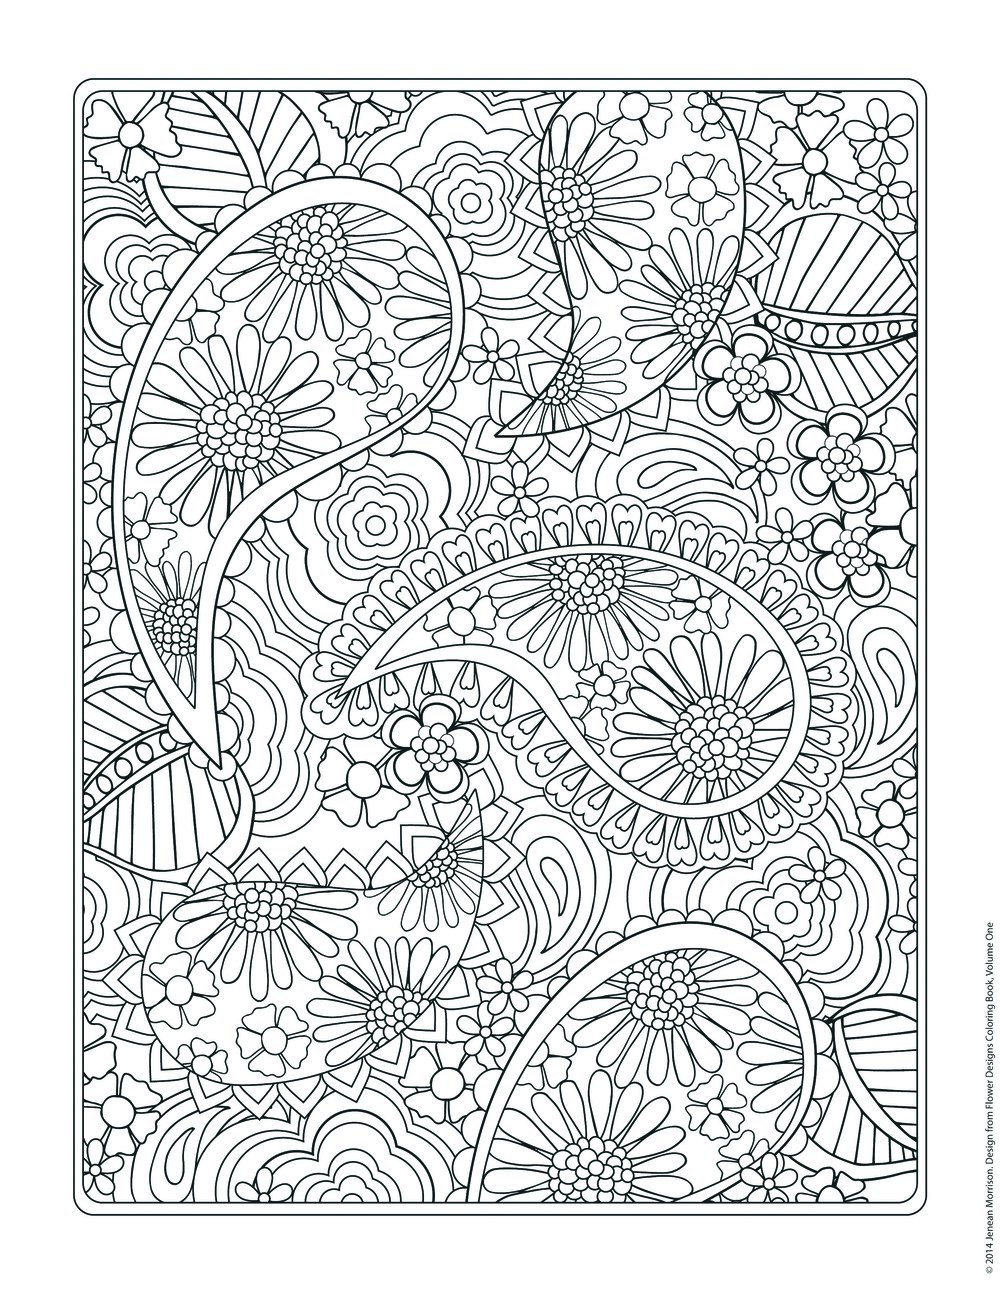 Impressive Coloring Pages Patterns And Designs Delighted Flower To